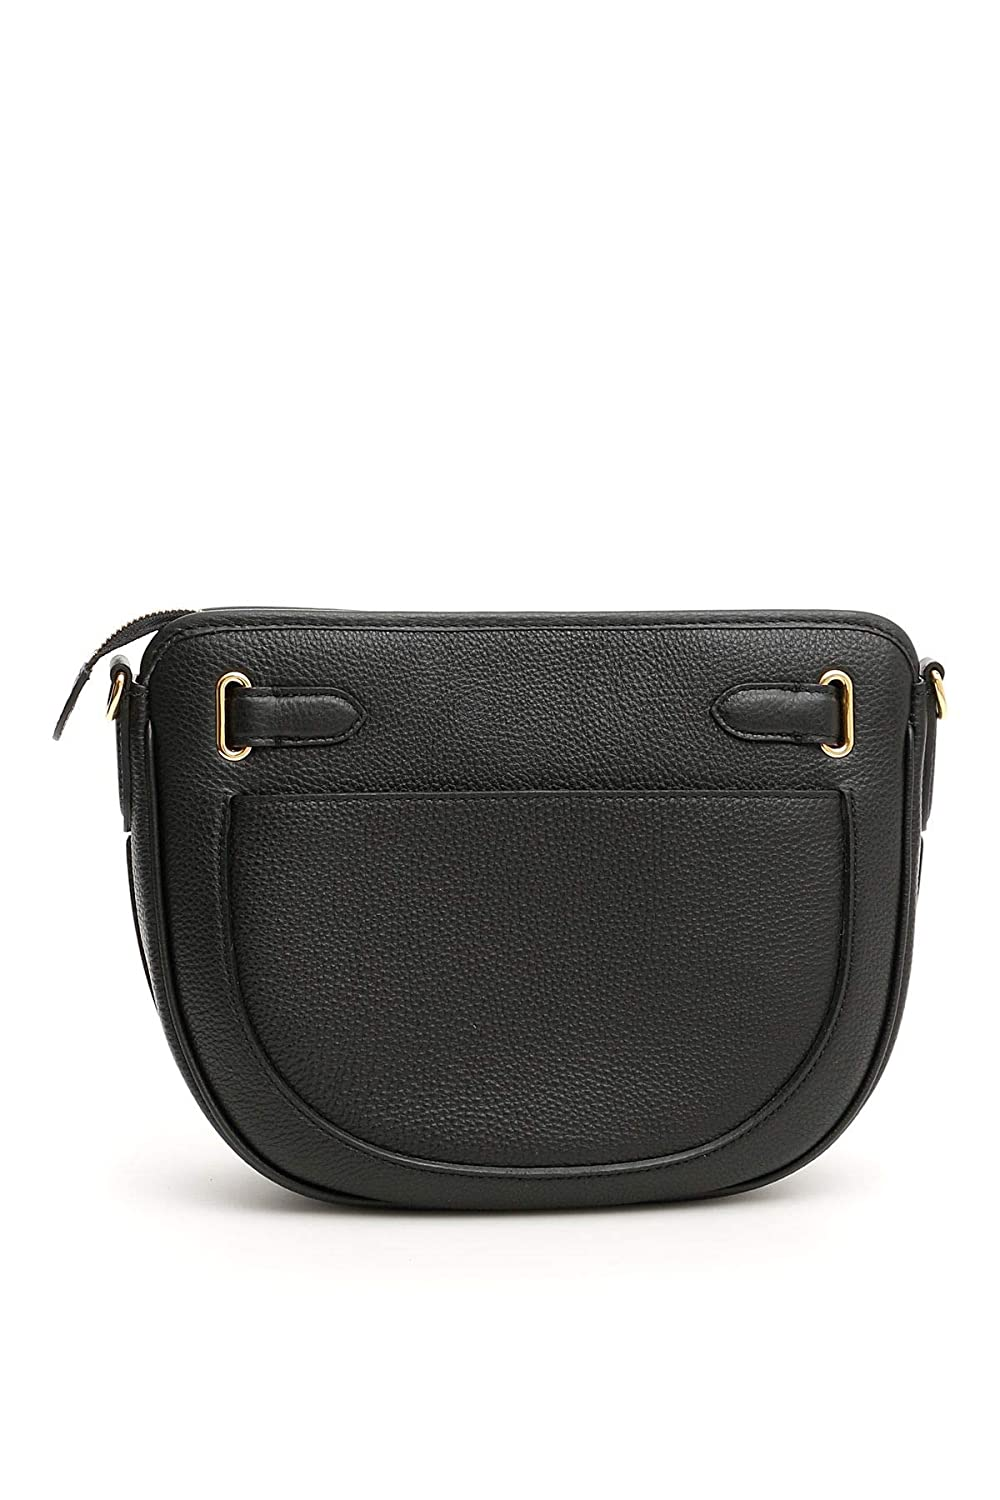 c840fa98a450 Amazon.com  Mulberry Brockwell Small Classic Grain Leather Satchel ...